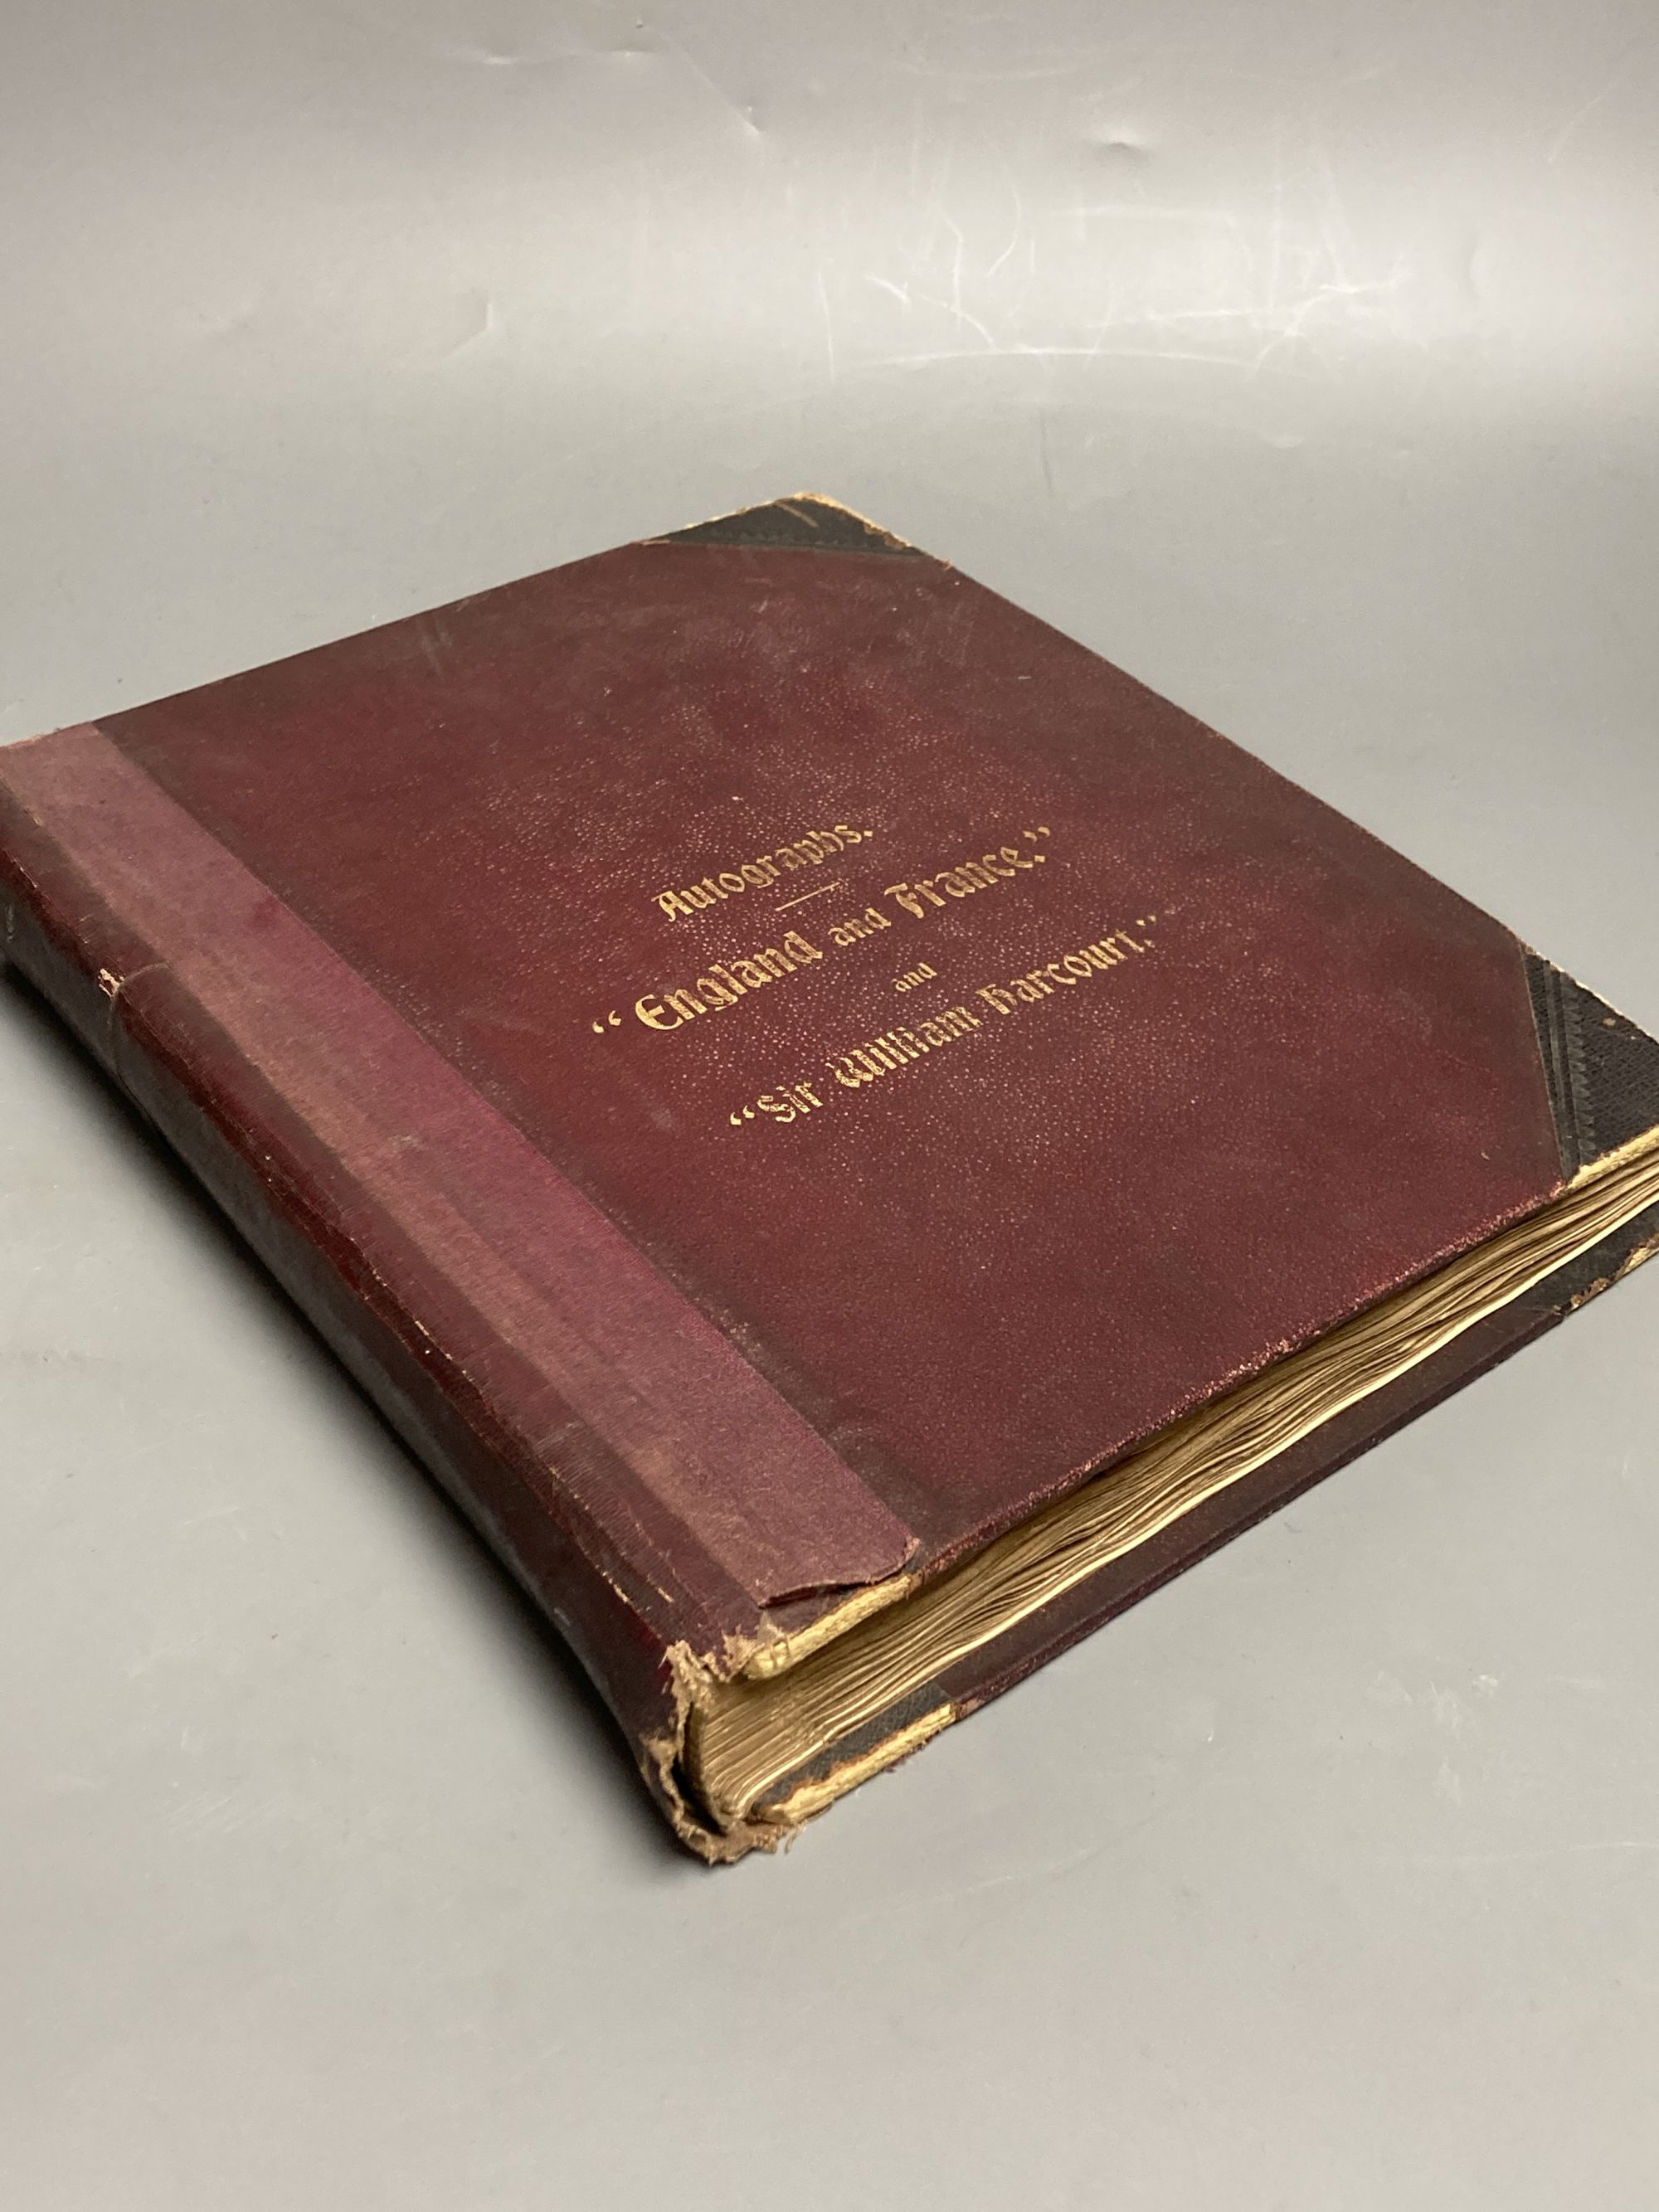 An autograph album of notable Edwardian and 1920s people